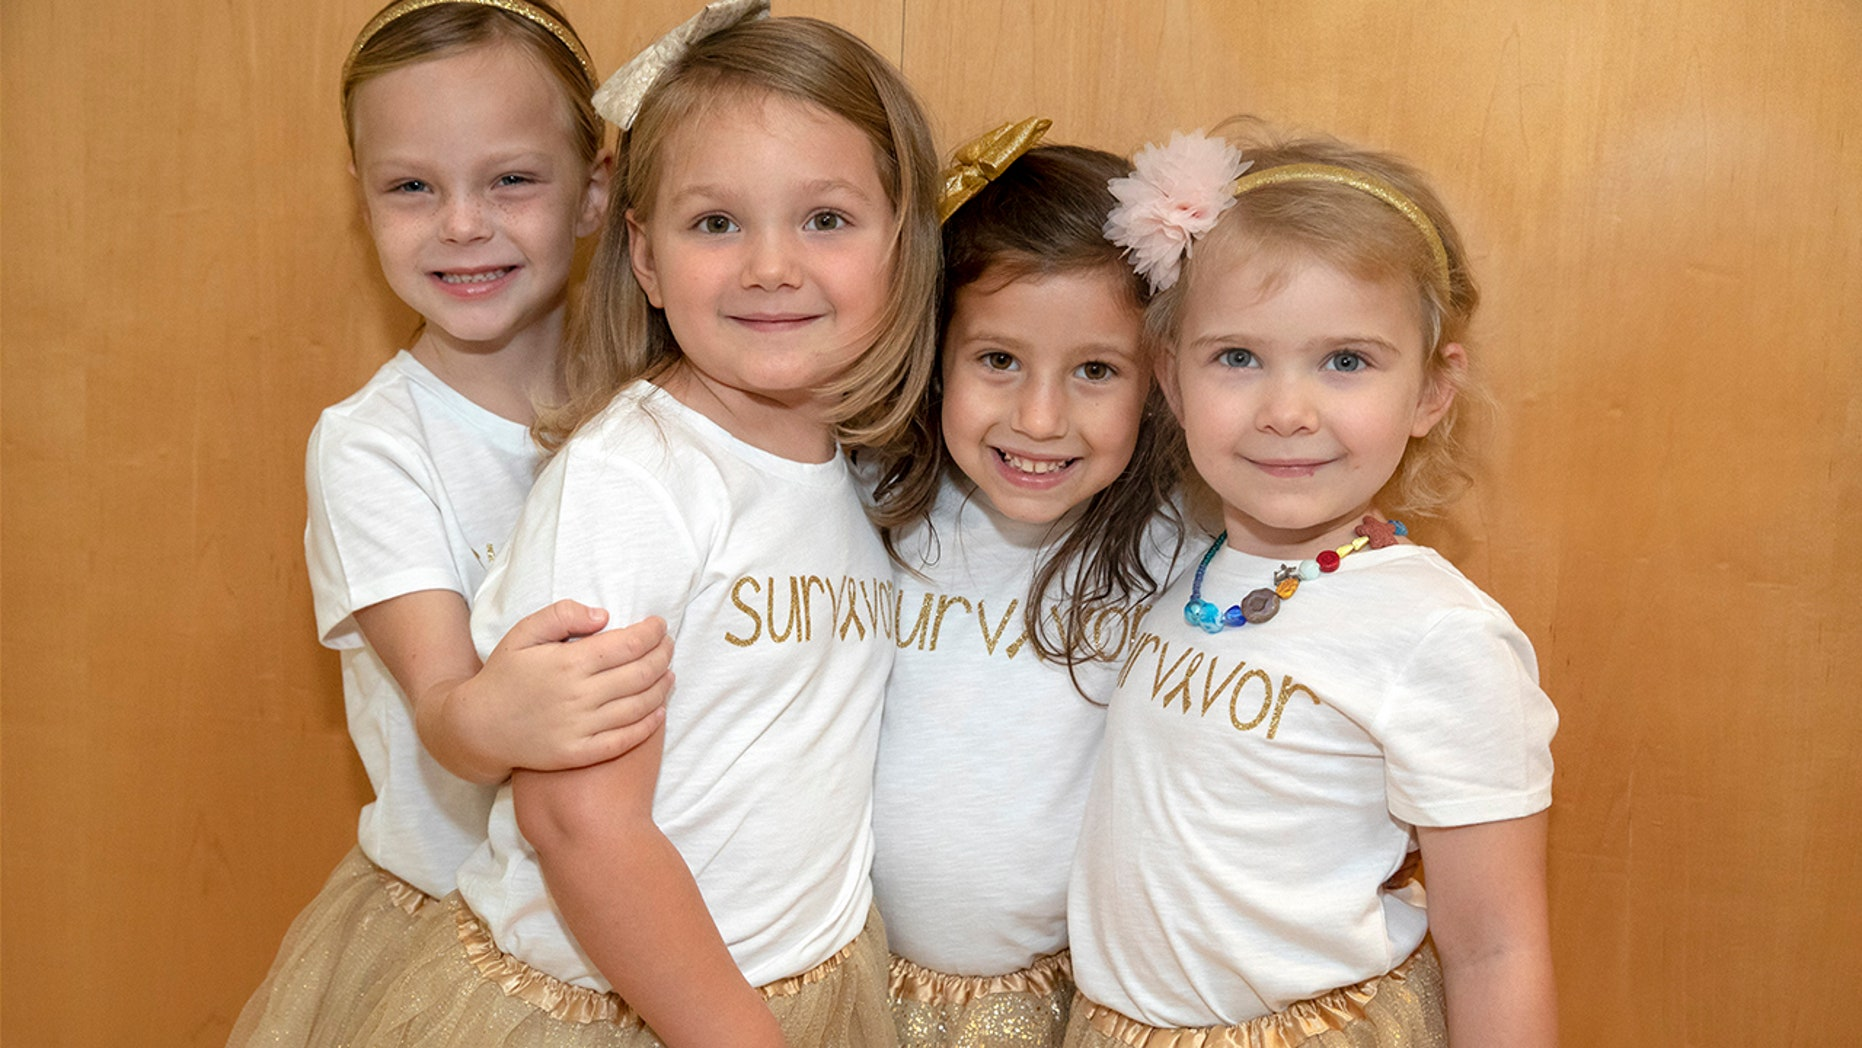 The four friends, who first met in 2016 while undergoing treatment, reunited for the touching photo during Childhood Cancer Awareness month.